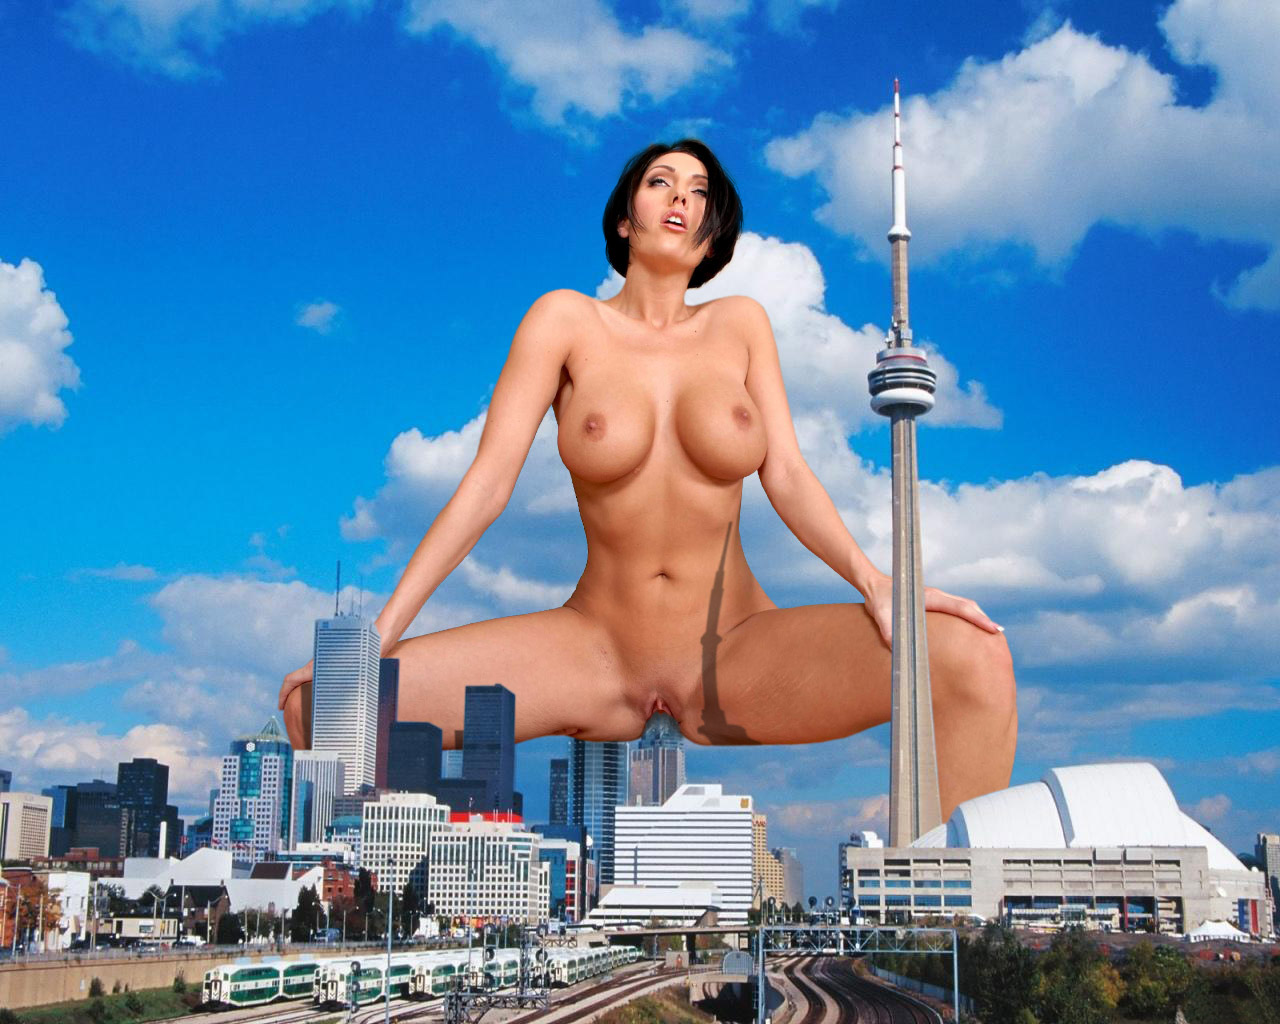 Giantess nudes nudes picture